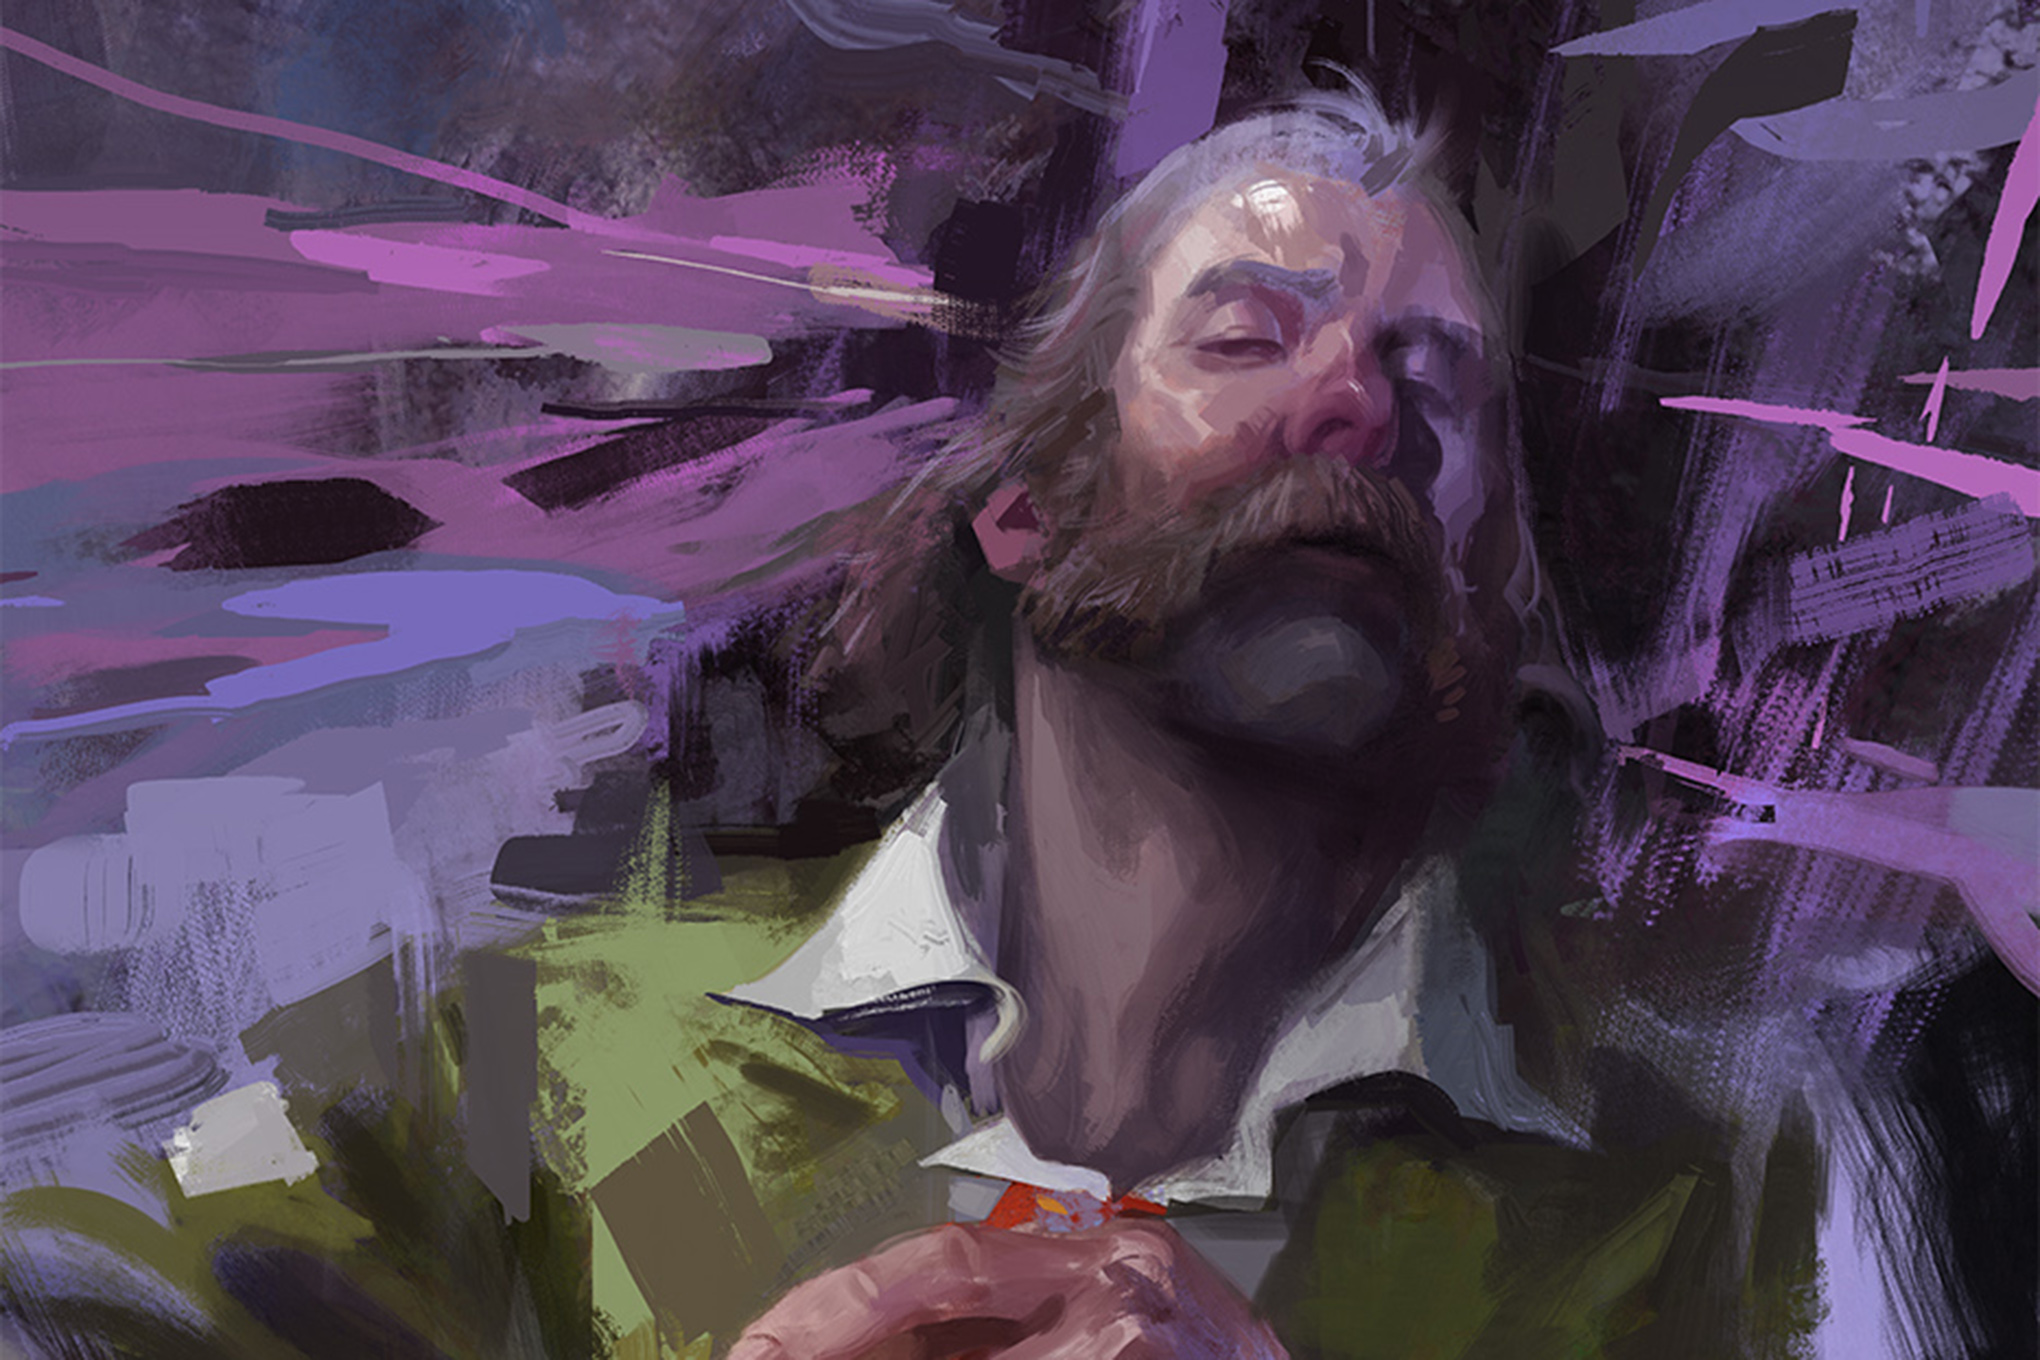 Concept art for Disco Elysium showing the player character as a sensitive type. The art resembles oil on canvas, and has a purple background.